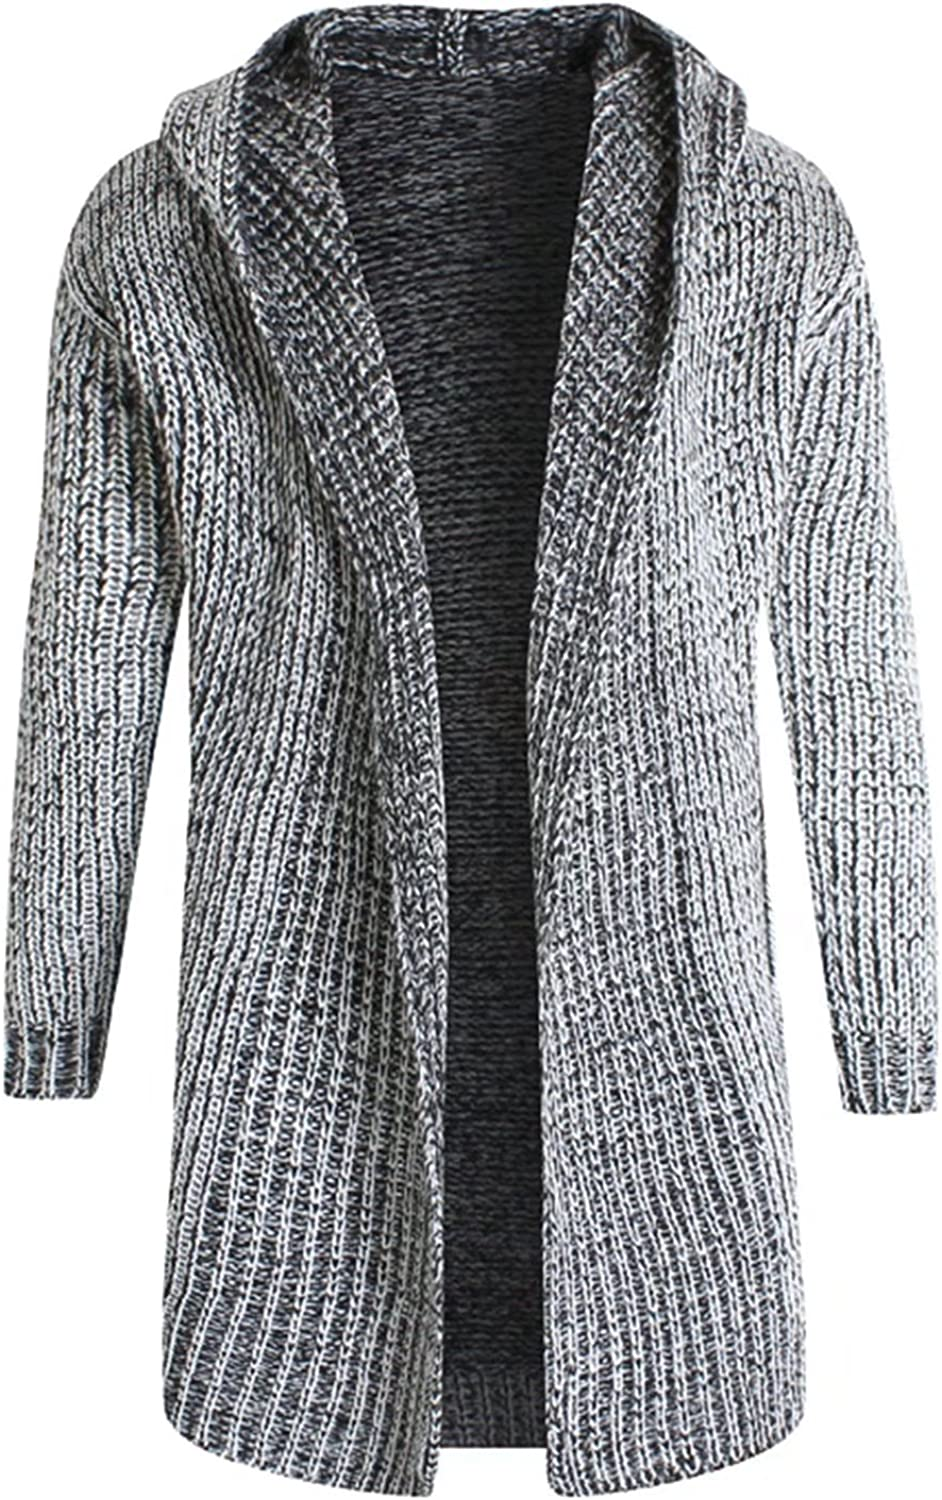 Mioubeila Mens Open Front Knit Hoodie Long Cardigan Sweater